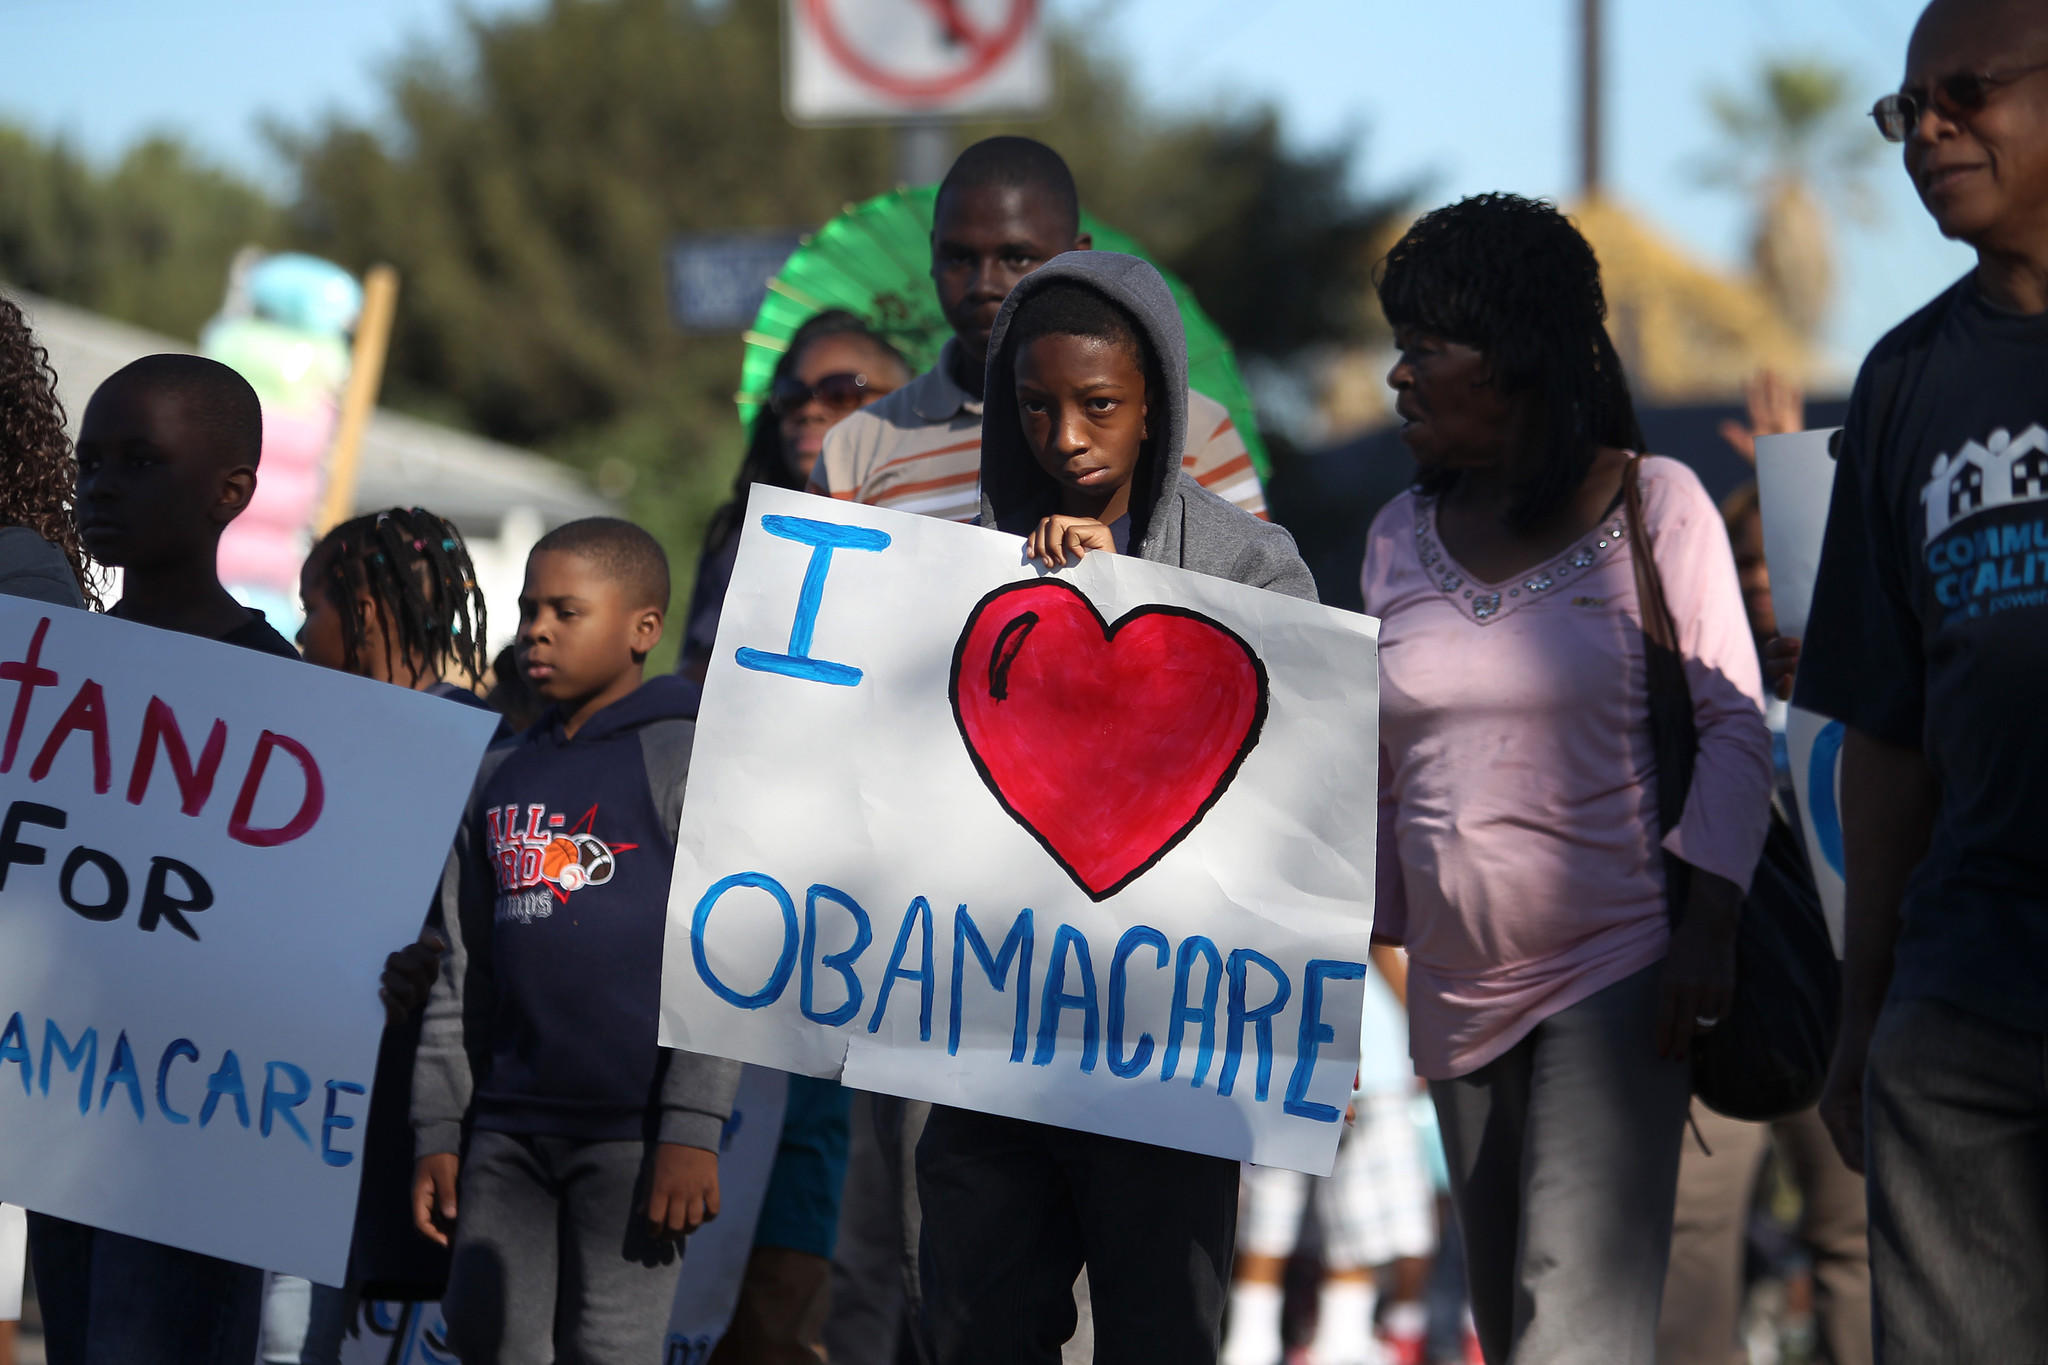 Supporters of the Affordable Care Act (ACA) march in the 29th annual Kingdom Day Parade on Jan. 20 in Los Angeles.